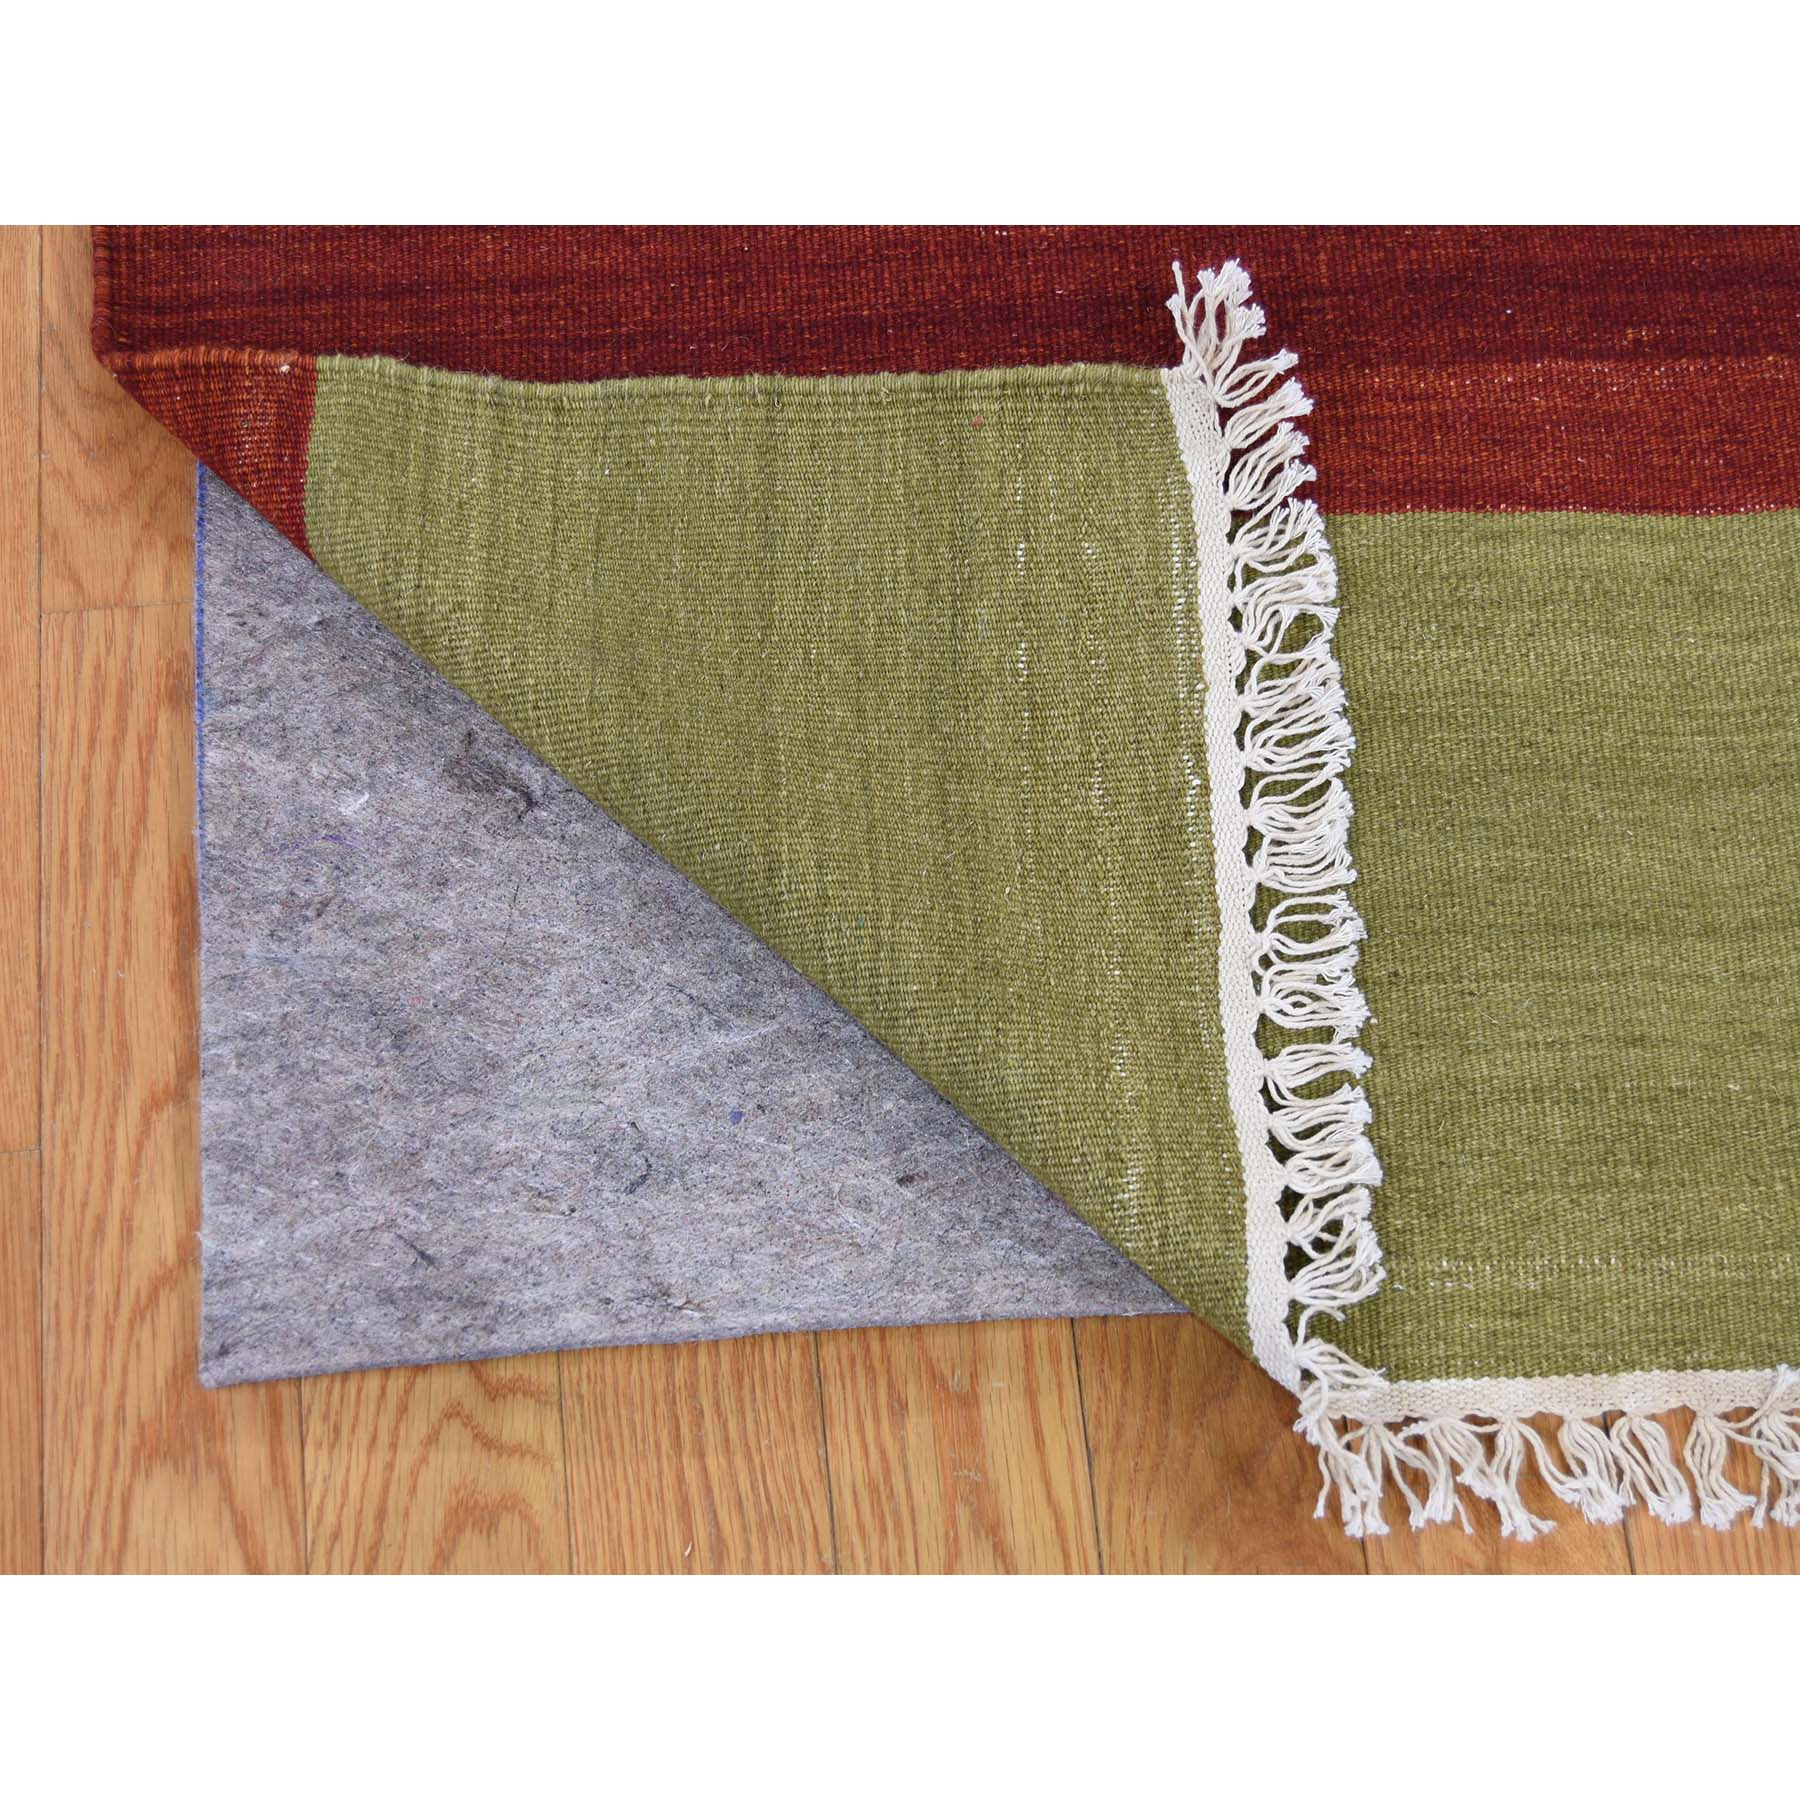 9-x12-3  Hand Woven Flat Weave Dazzle Design Durie Kilim Reversible Rug